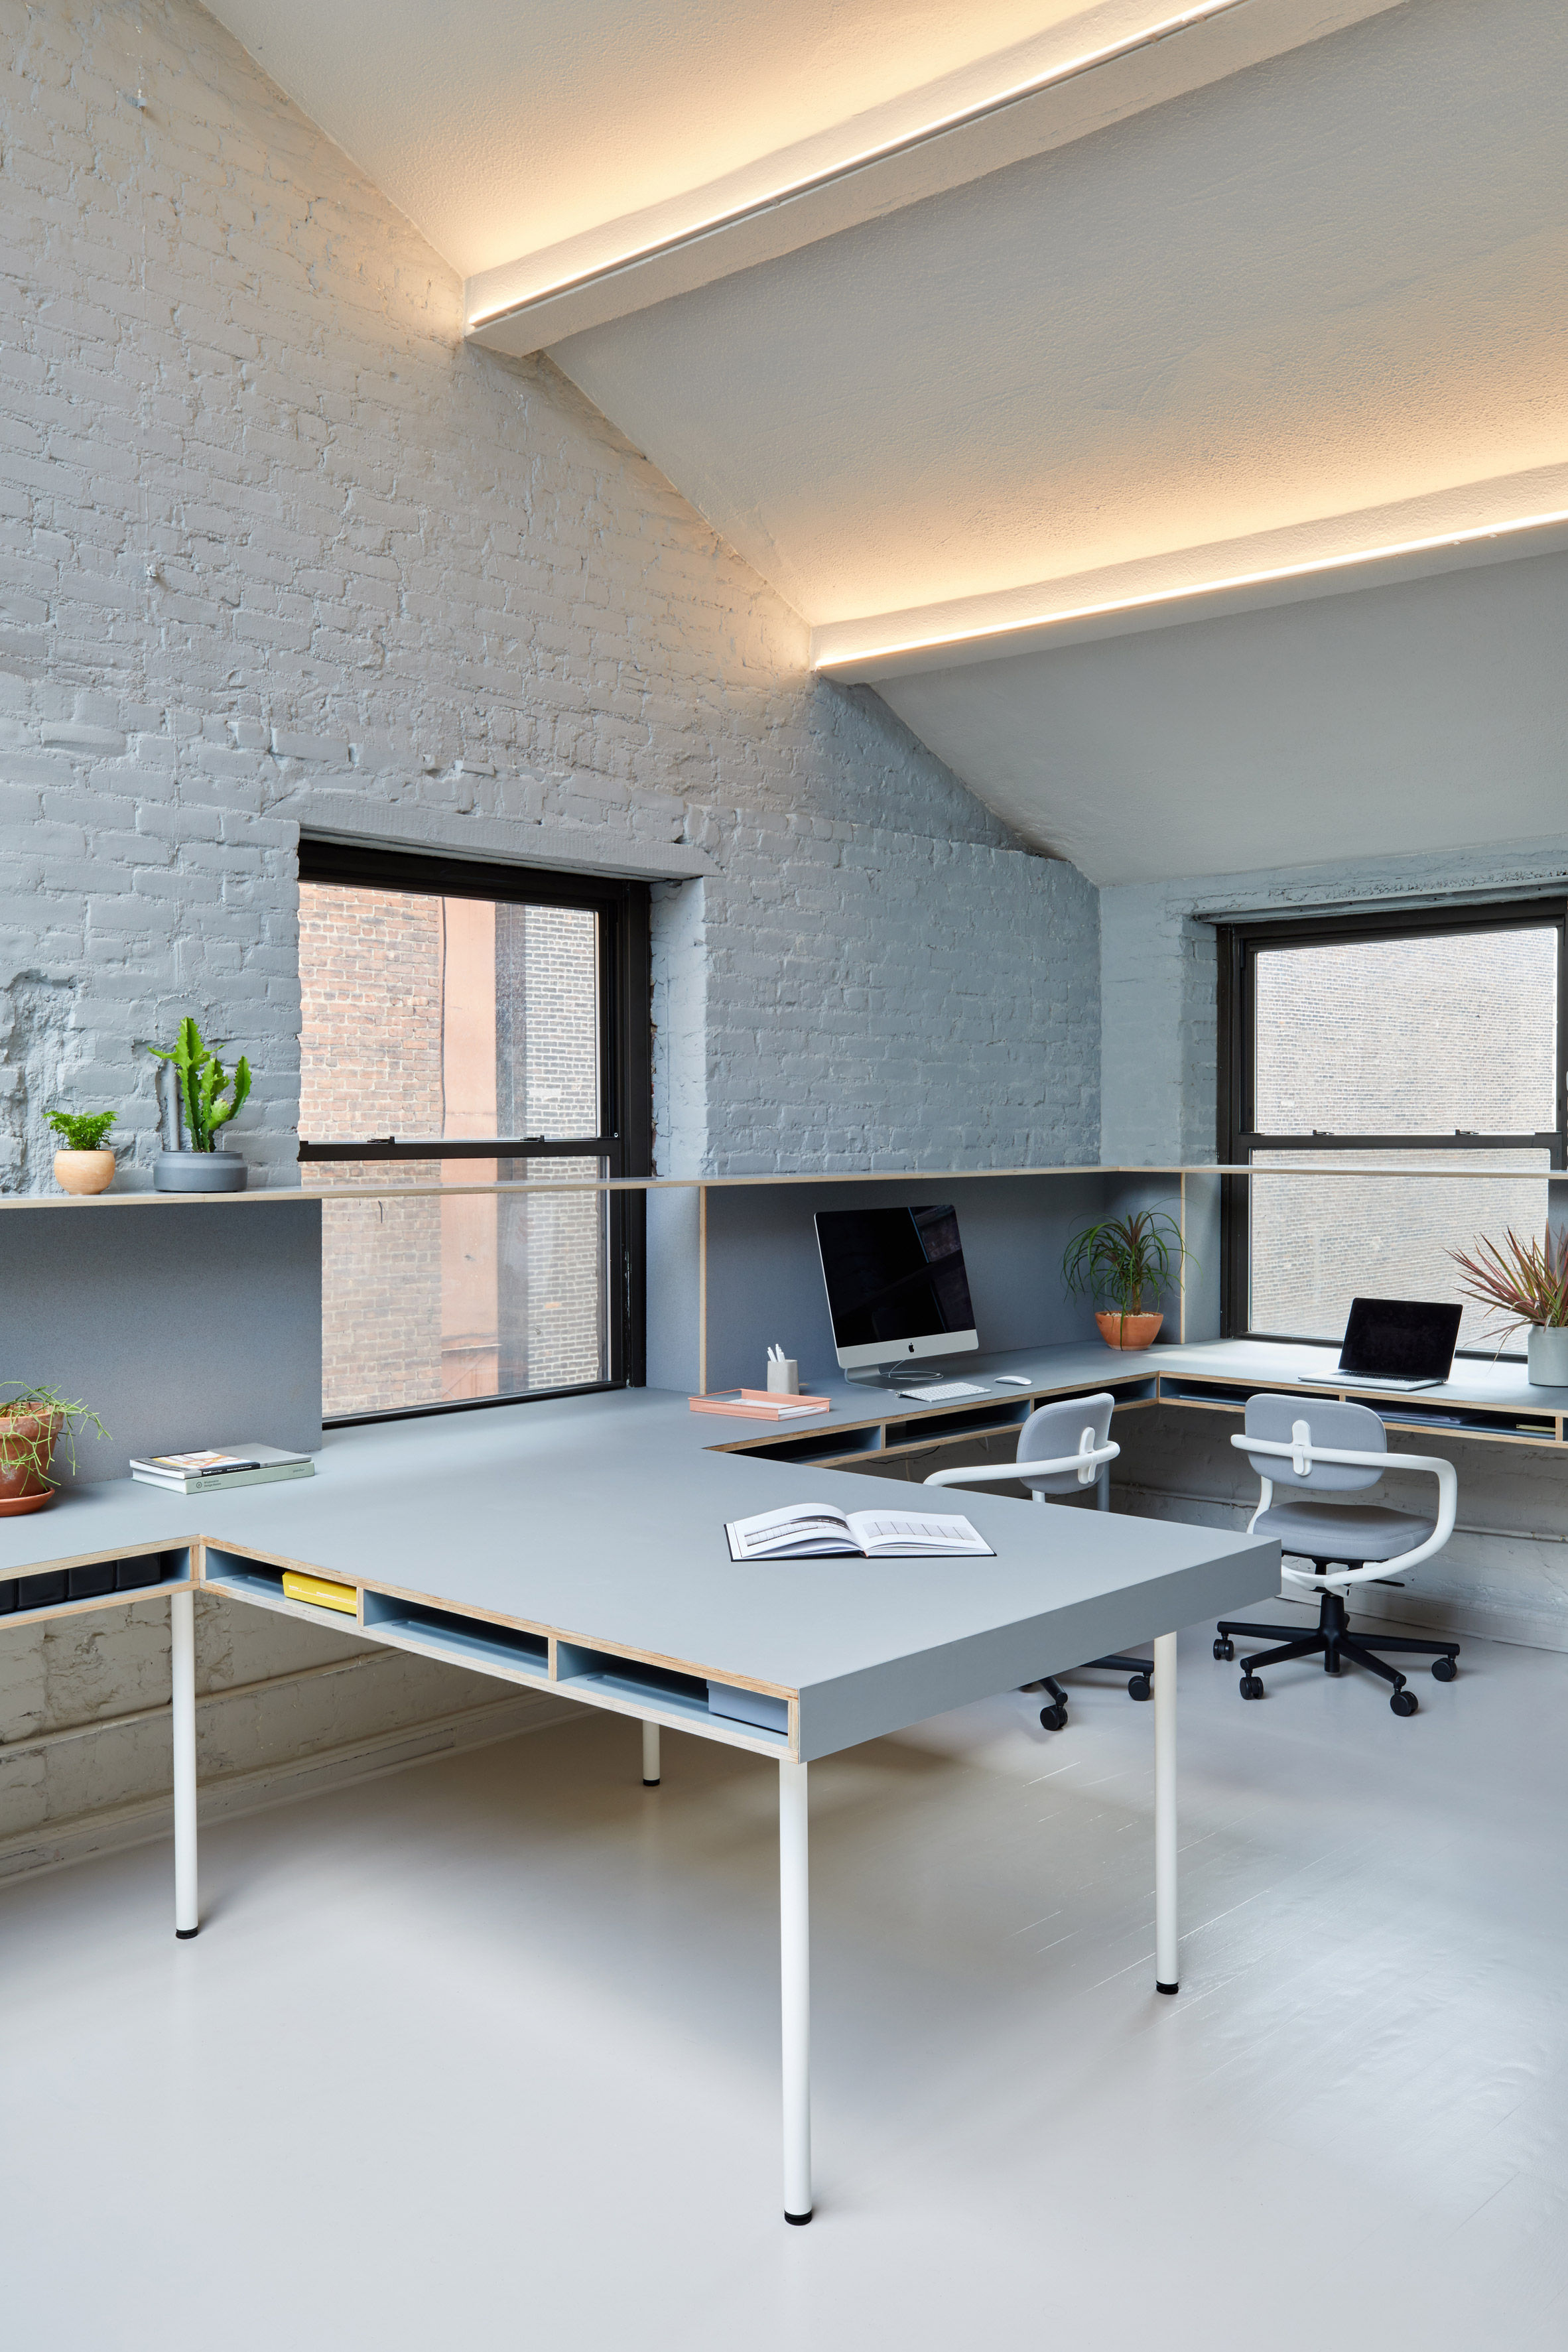 OS Offices by GRT Architects